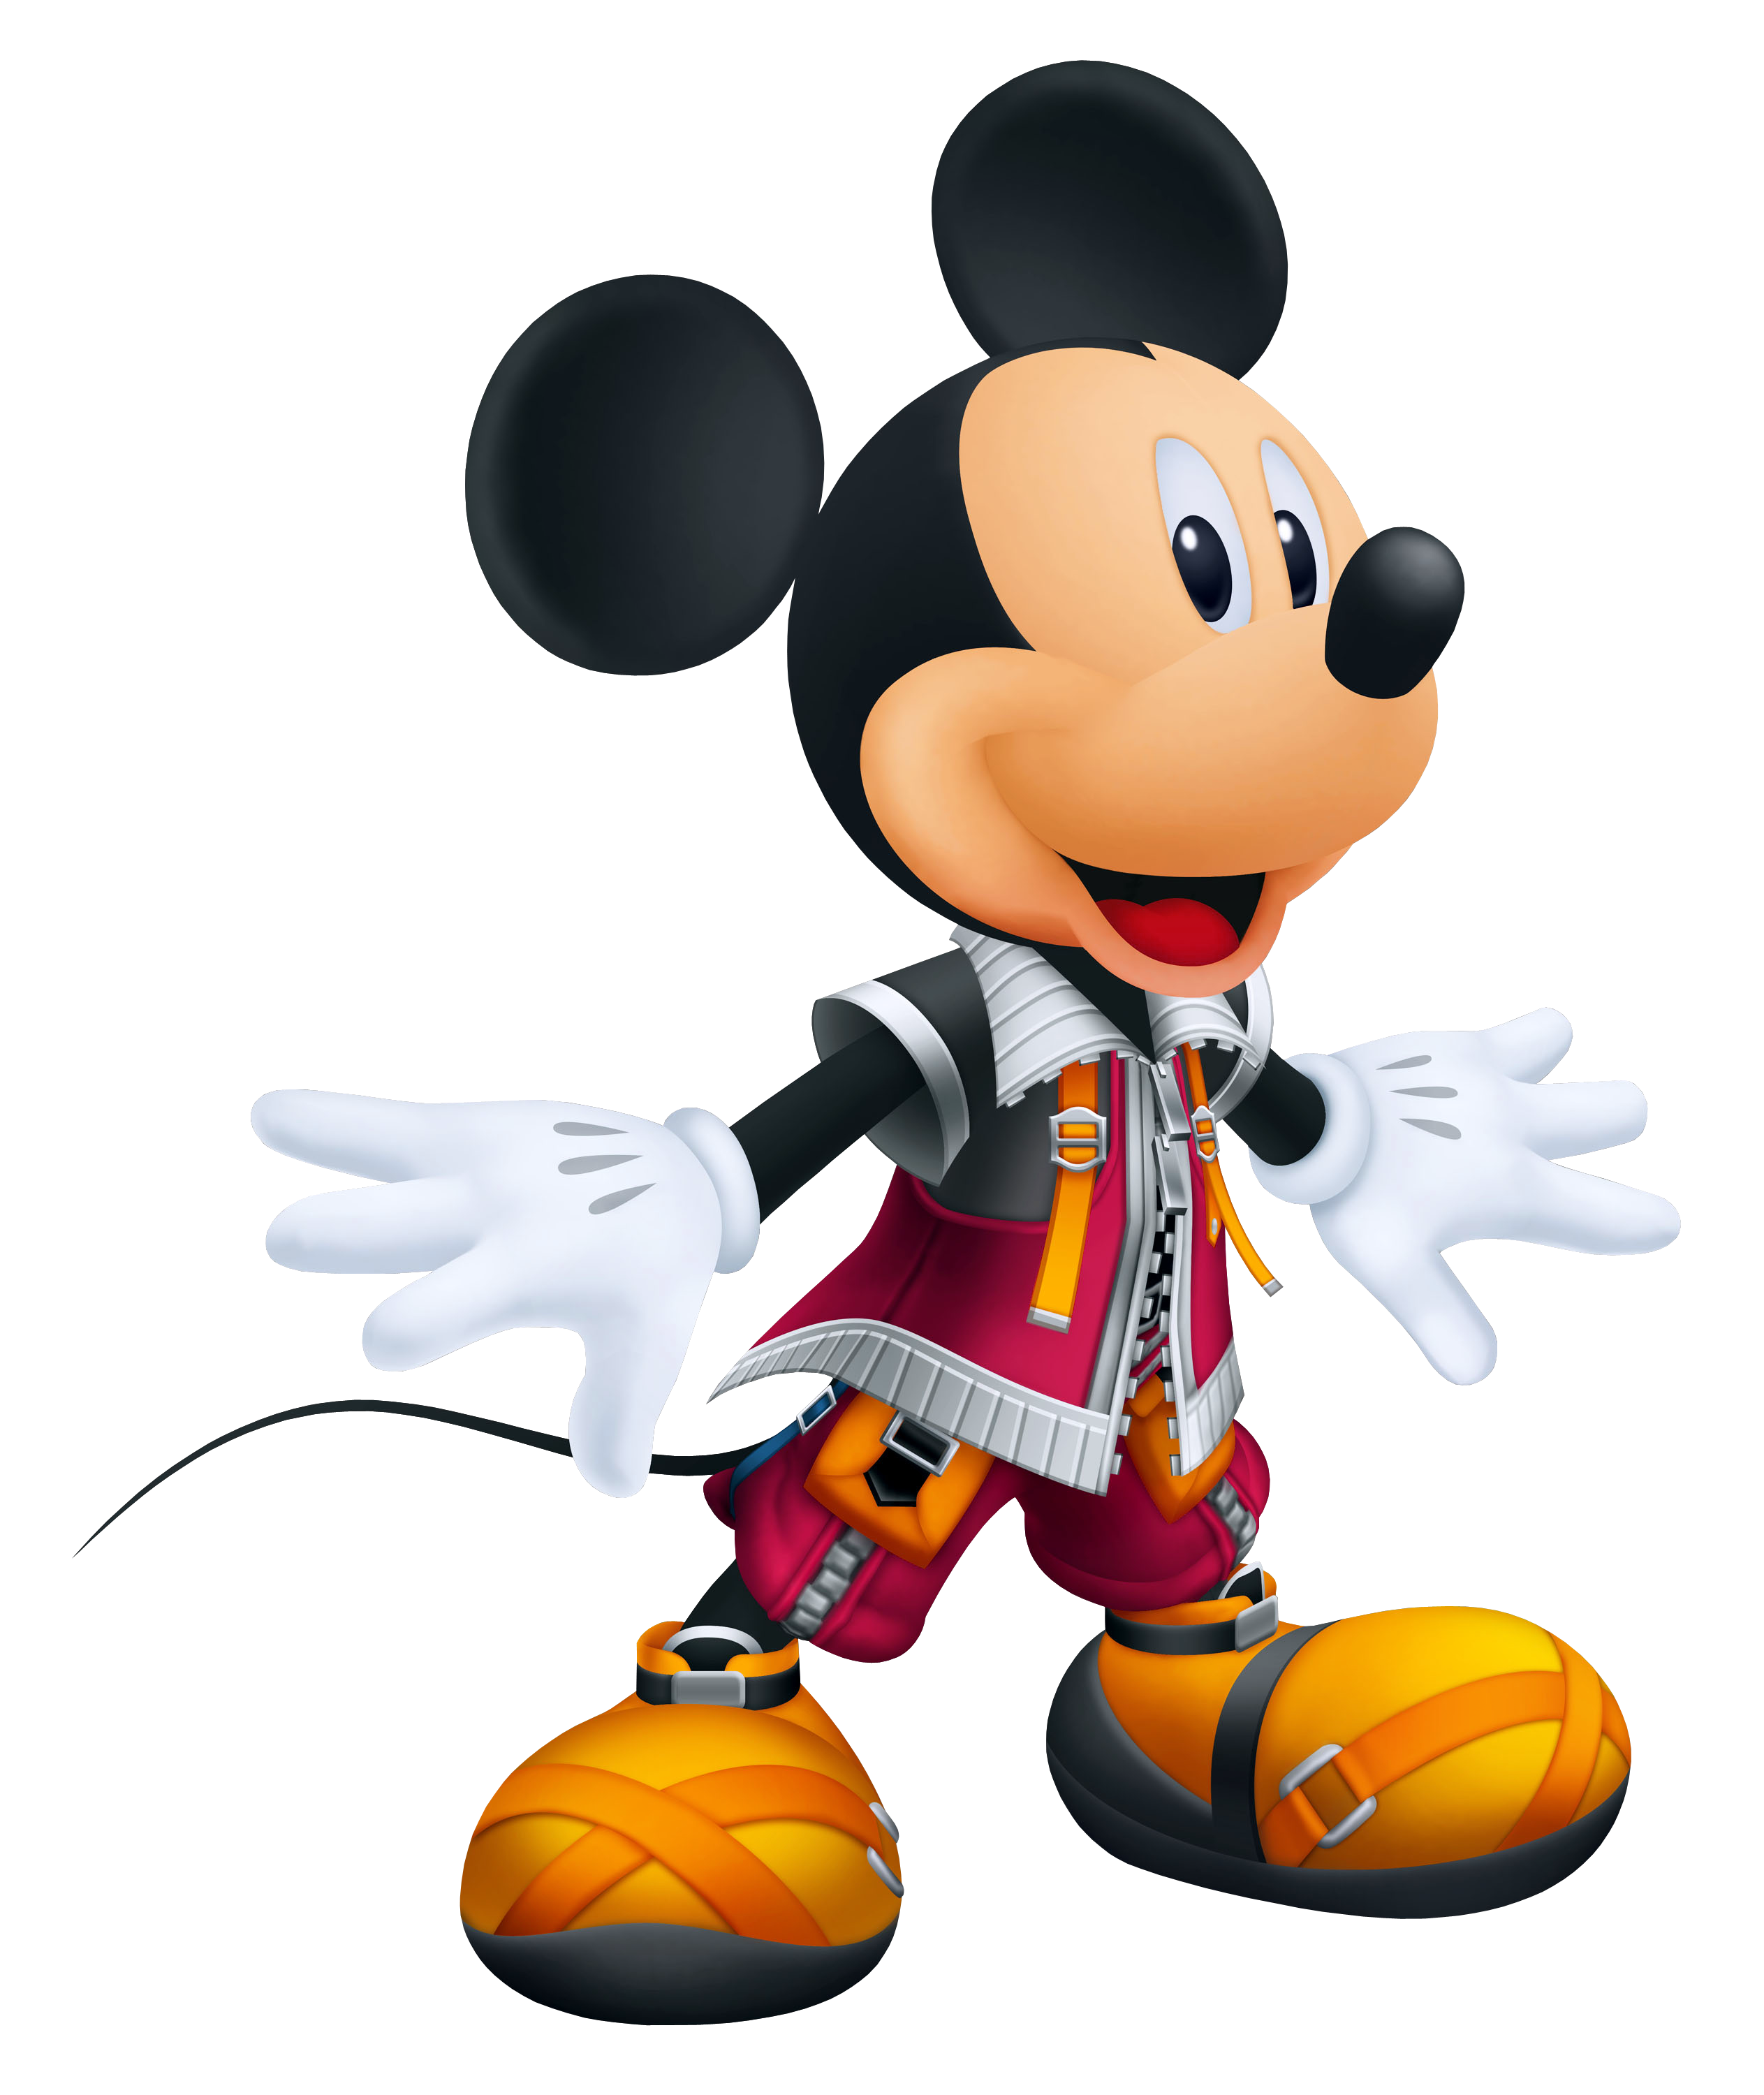 Mickey mouse transparent png. King image purepng free